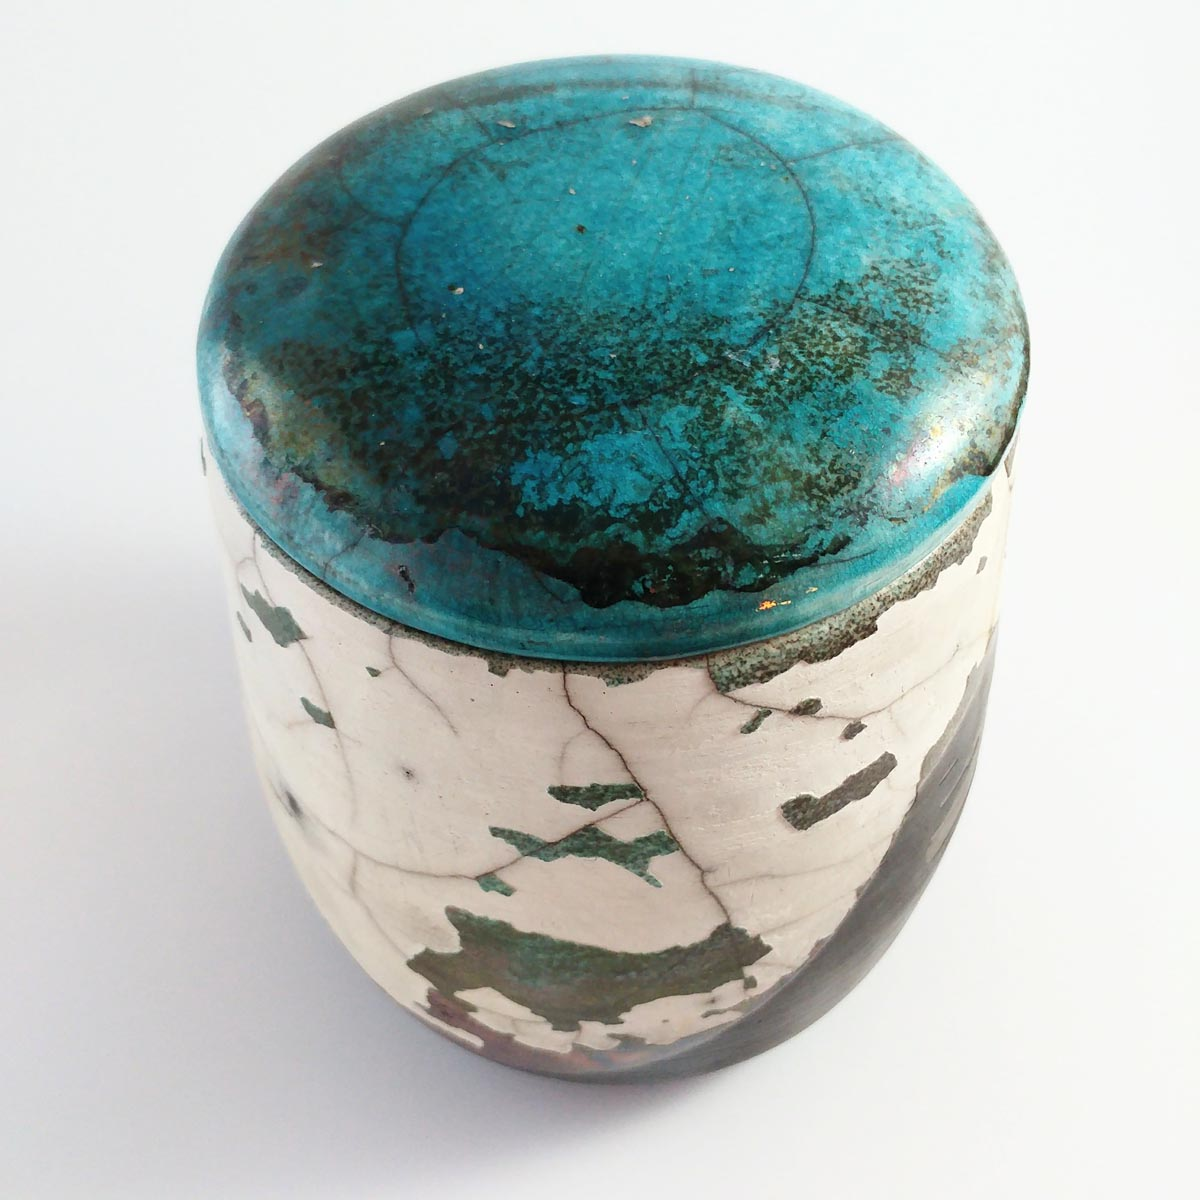 Naiim Pottery, Handmade Carved Raku Pottery Vase, Handmade Ashes Urn, Large Urn, Ceramic Vase, Decorative Art, Homedecore, Luxury Ceramic, Pet urn